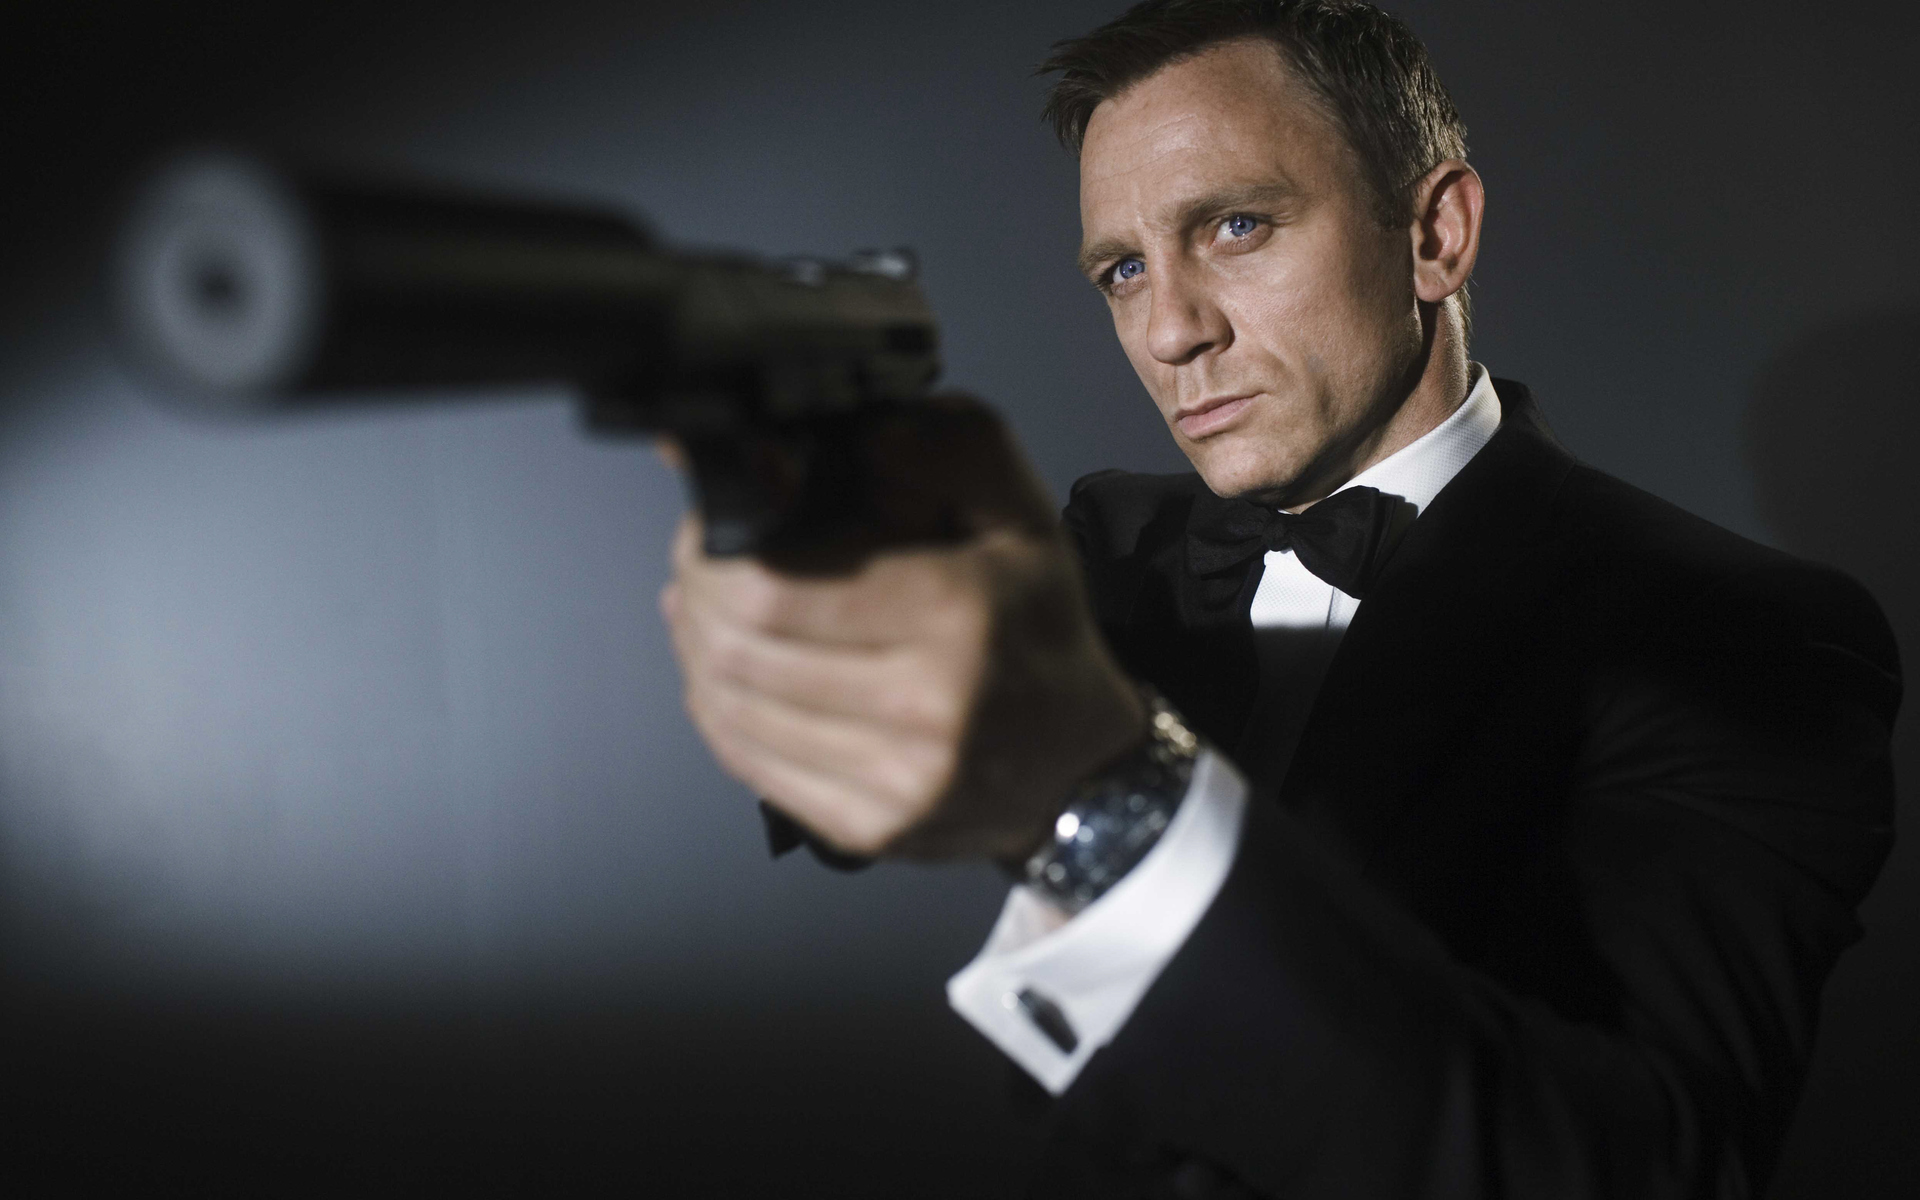 Daniel Craig Wallpapers High Resolution and Quality Download